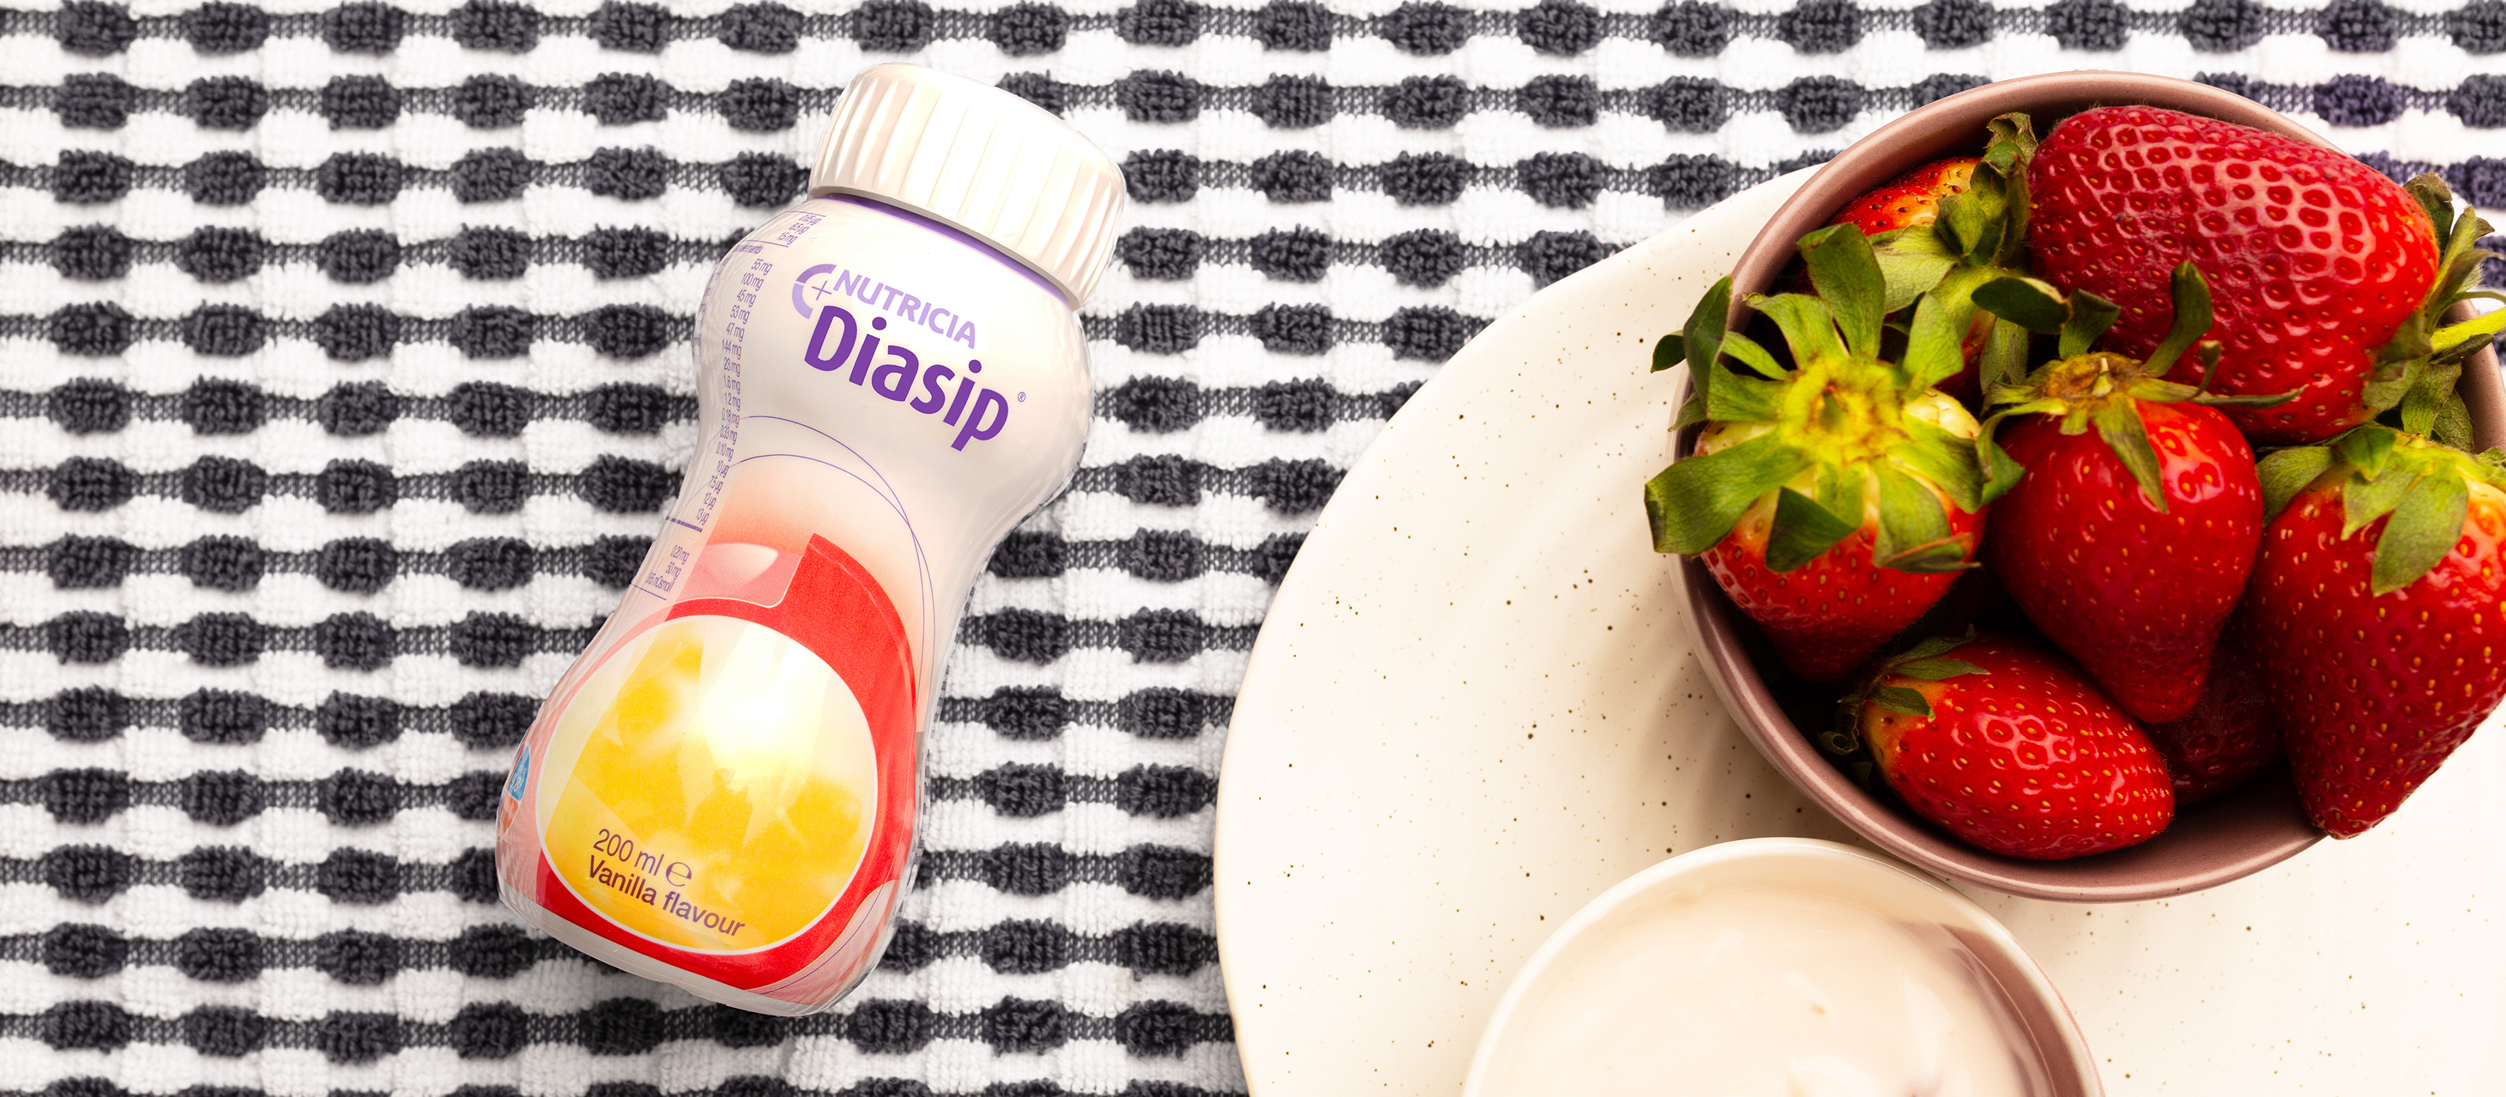 Diasip Vanilla Flavour with yoghurt and strawberries